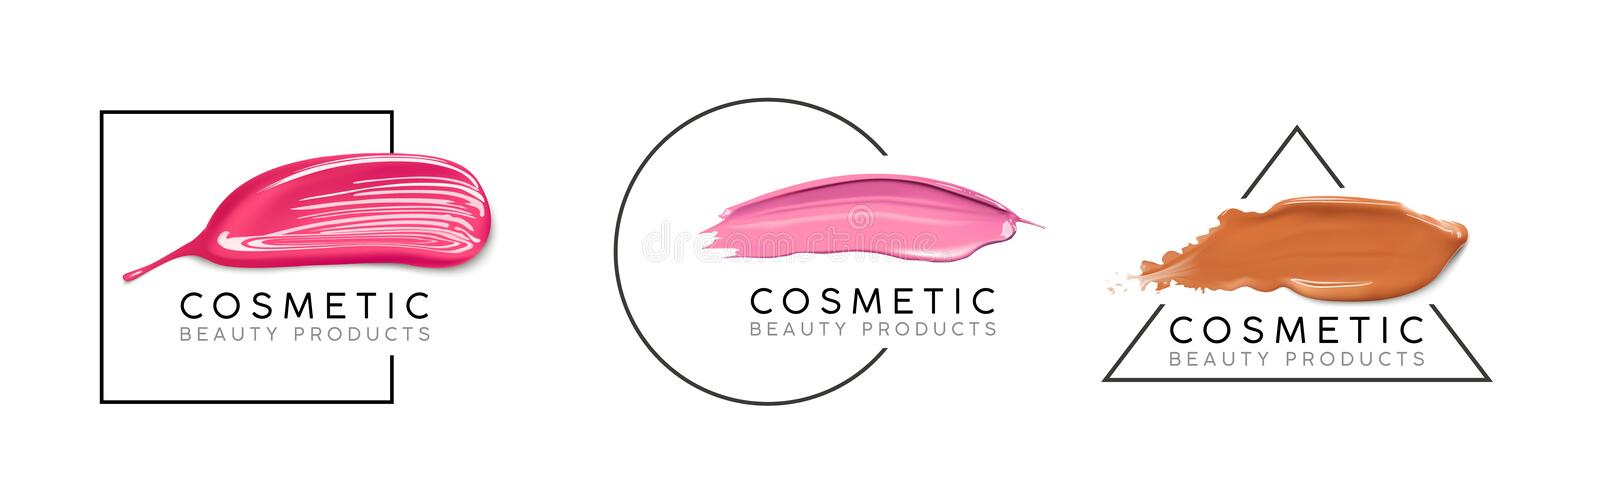 Makeup design template with place for text. Cosmetic Logo concept of liquid foundation, nail polish and lipstick smear stock illustration